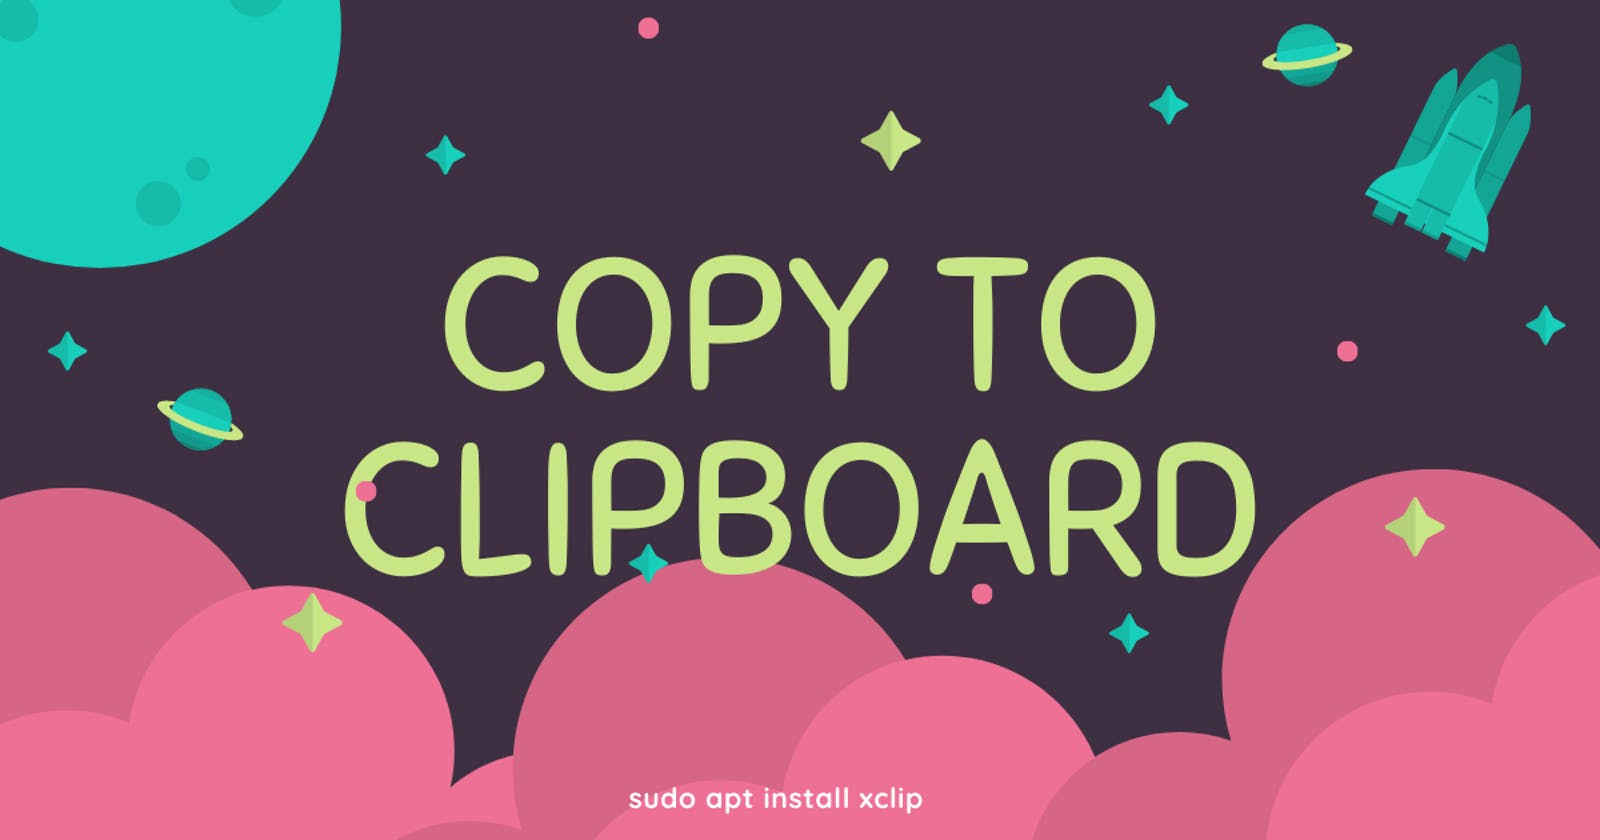 How to Copy To Clipboard in Terminal